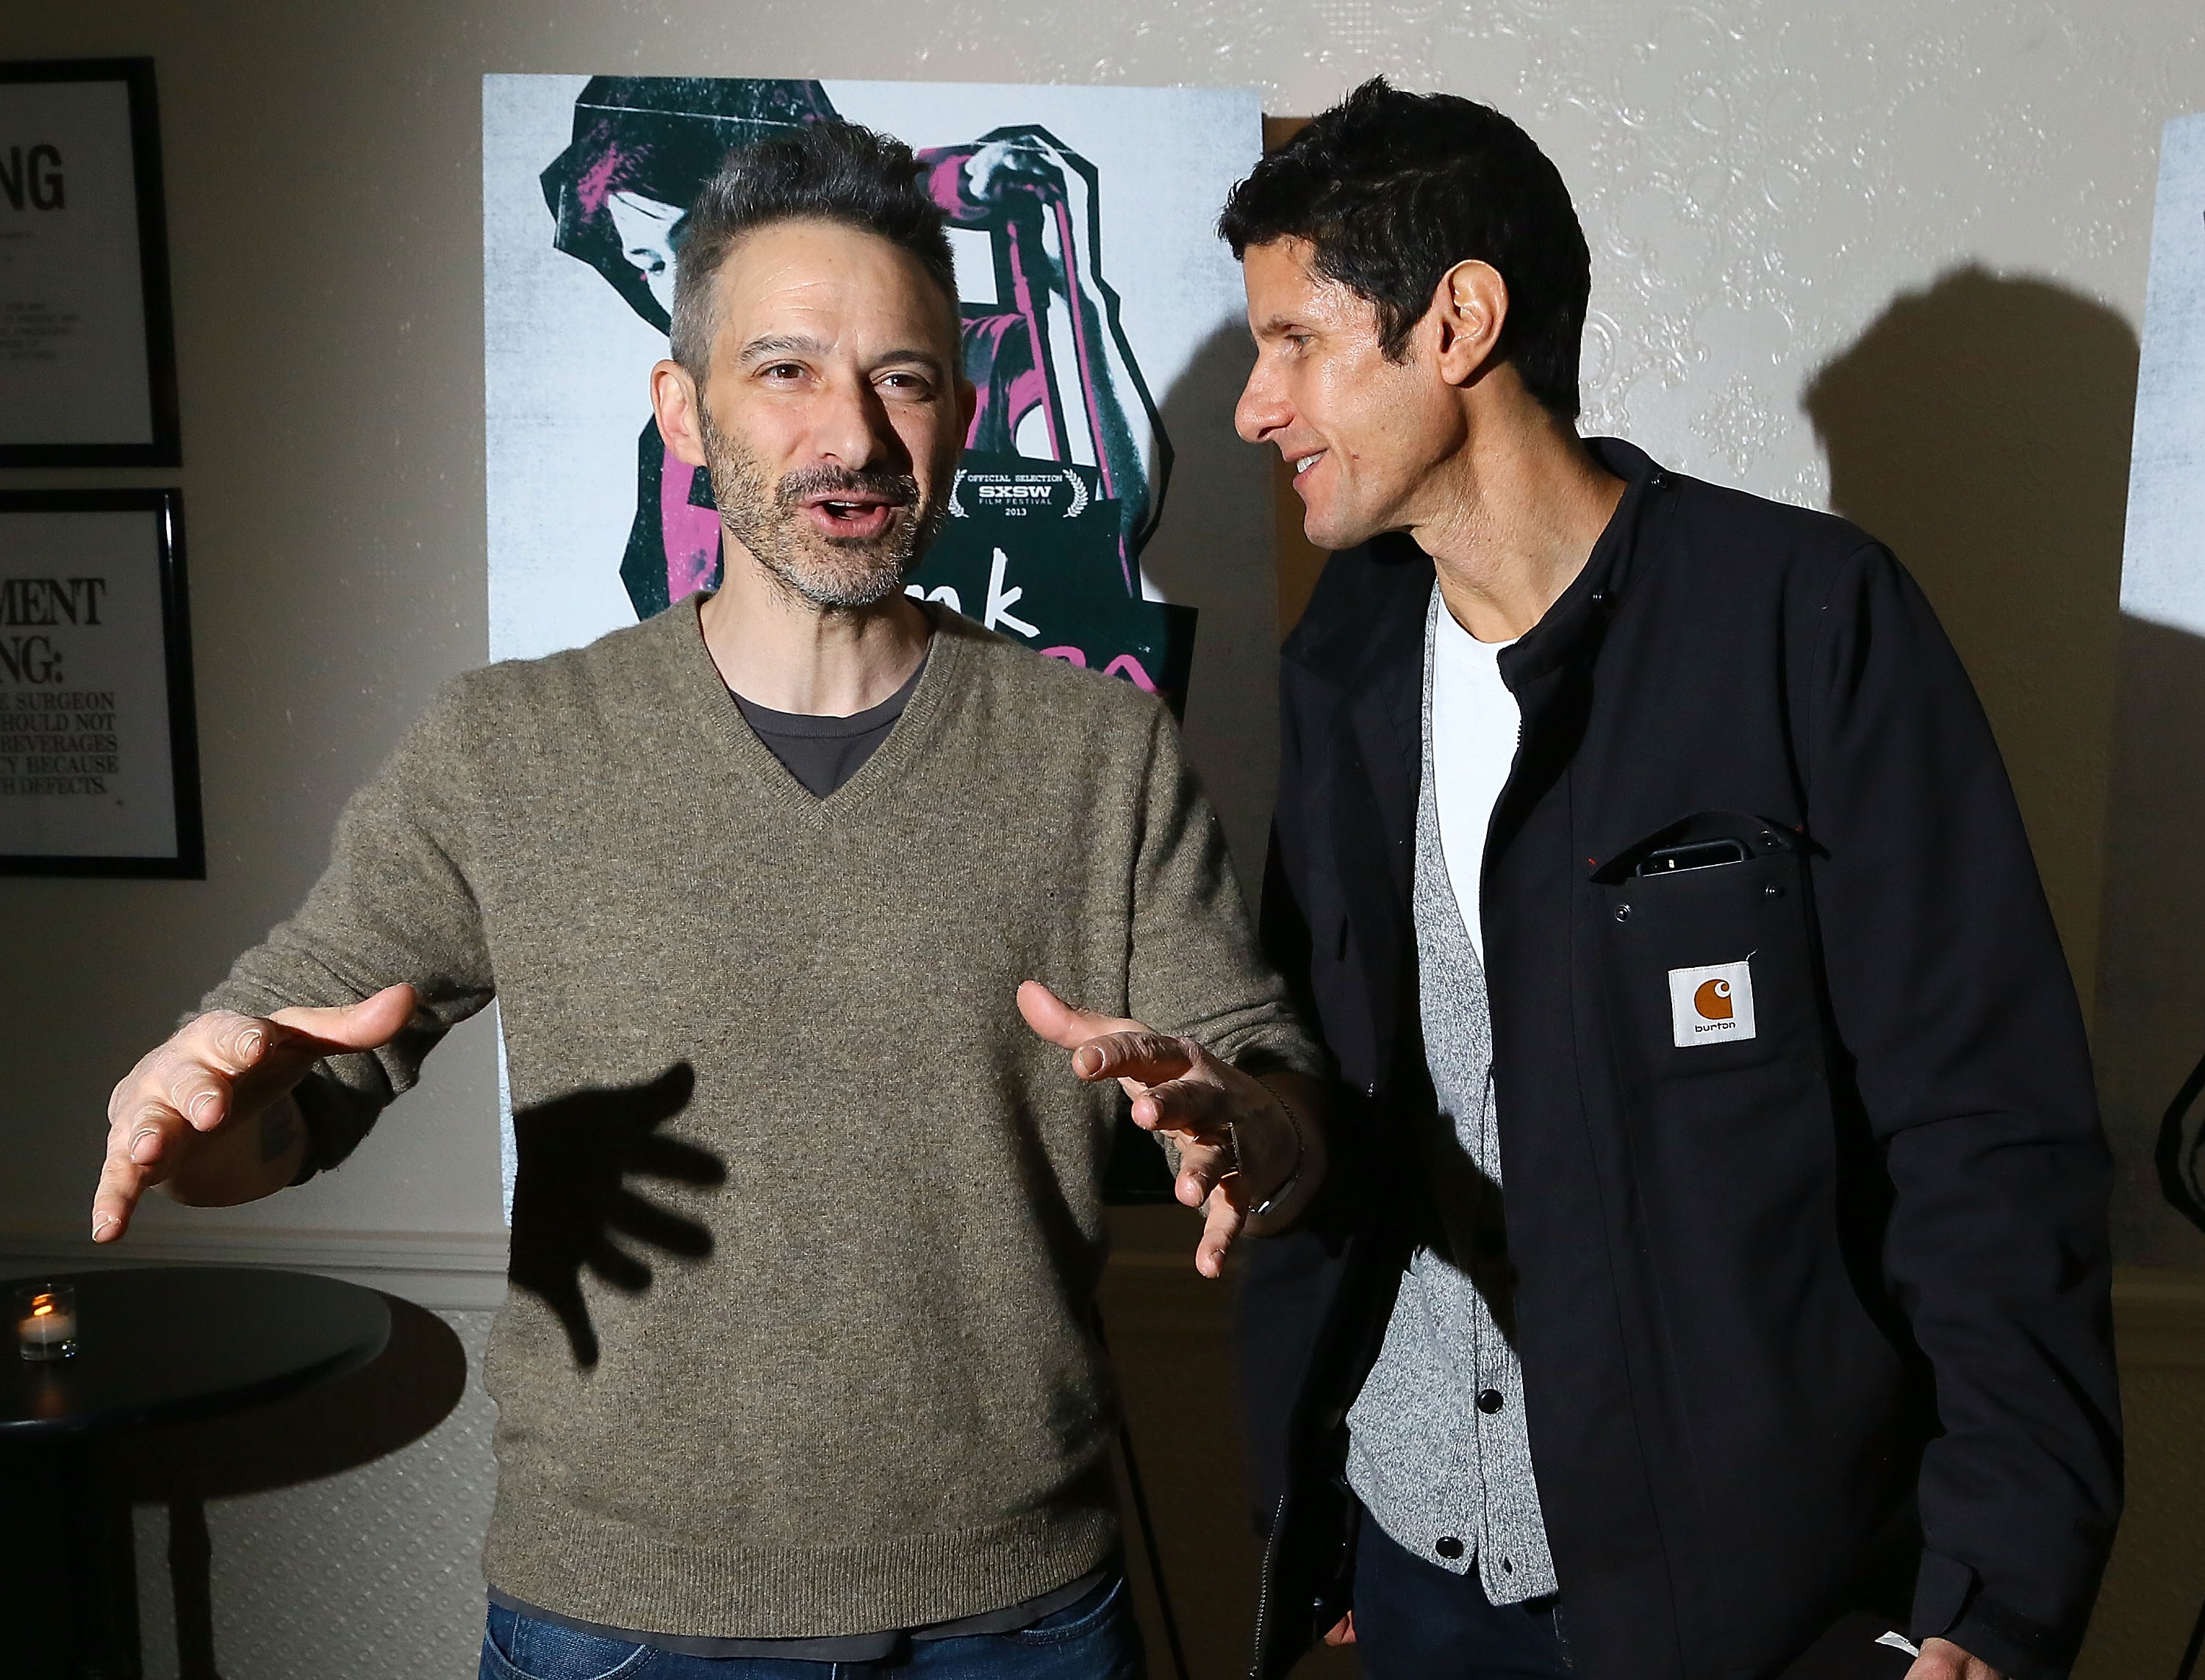 Beastie Boys rappers Adam Horovitz and Michael Diamond attend  The Punk Singer  screening at the Ace Hotel in New York City on Nov. 24, 2013.